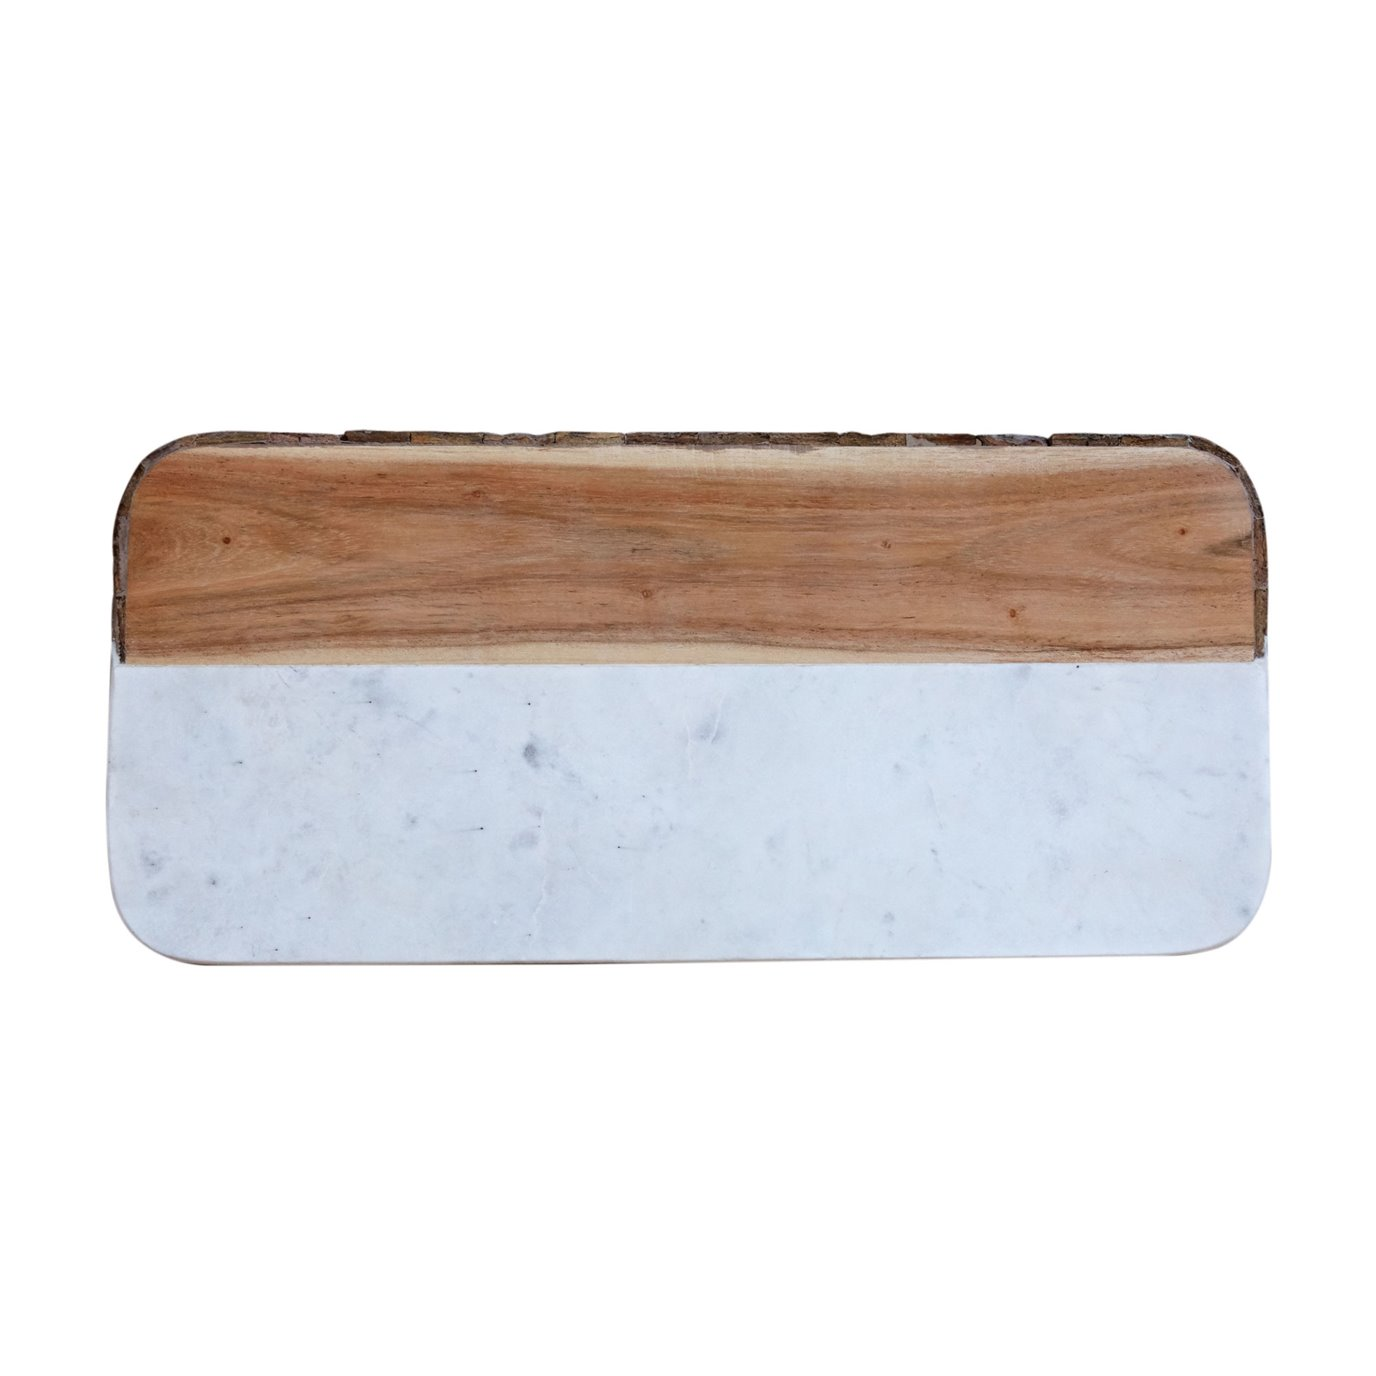 White Marble & Mango Wood Rectangle Cheese Board (Each one will vary)